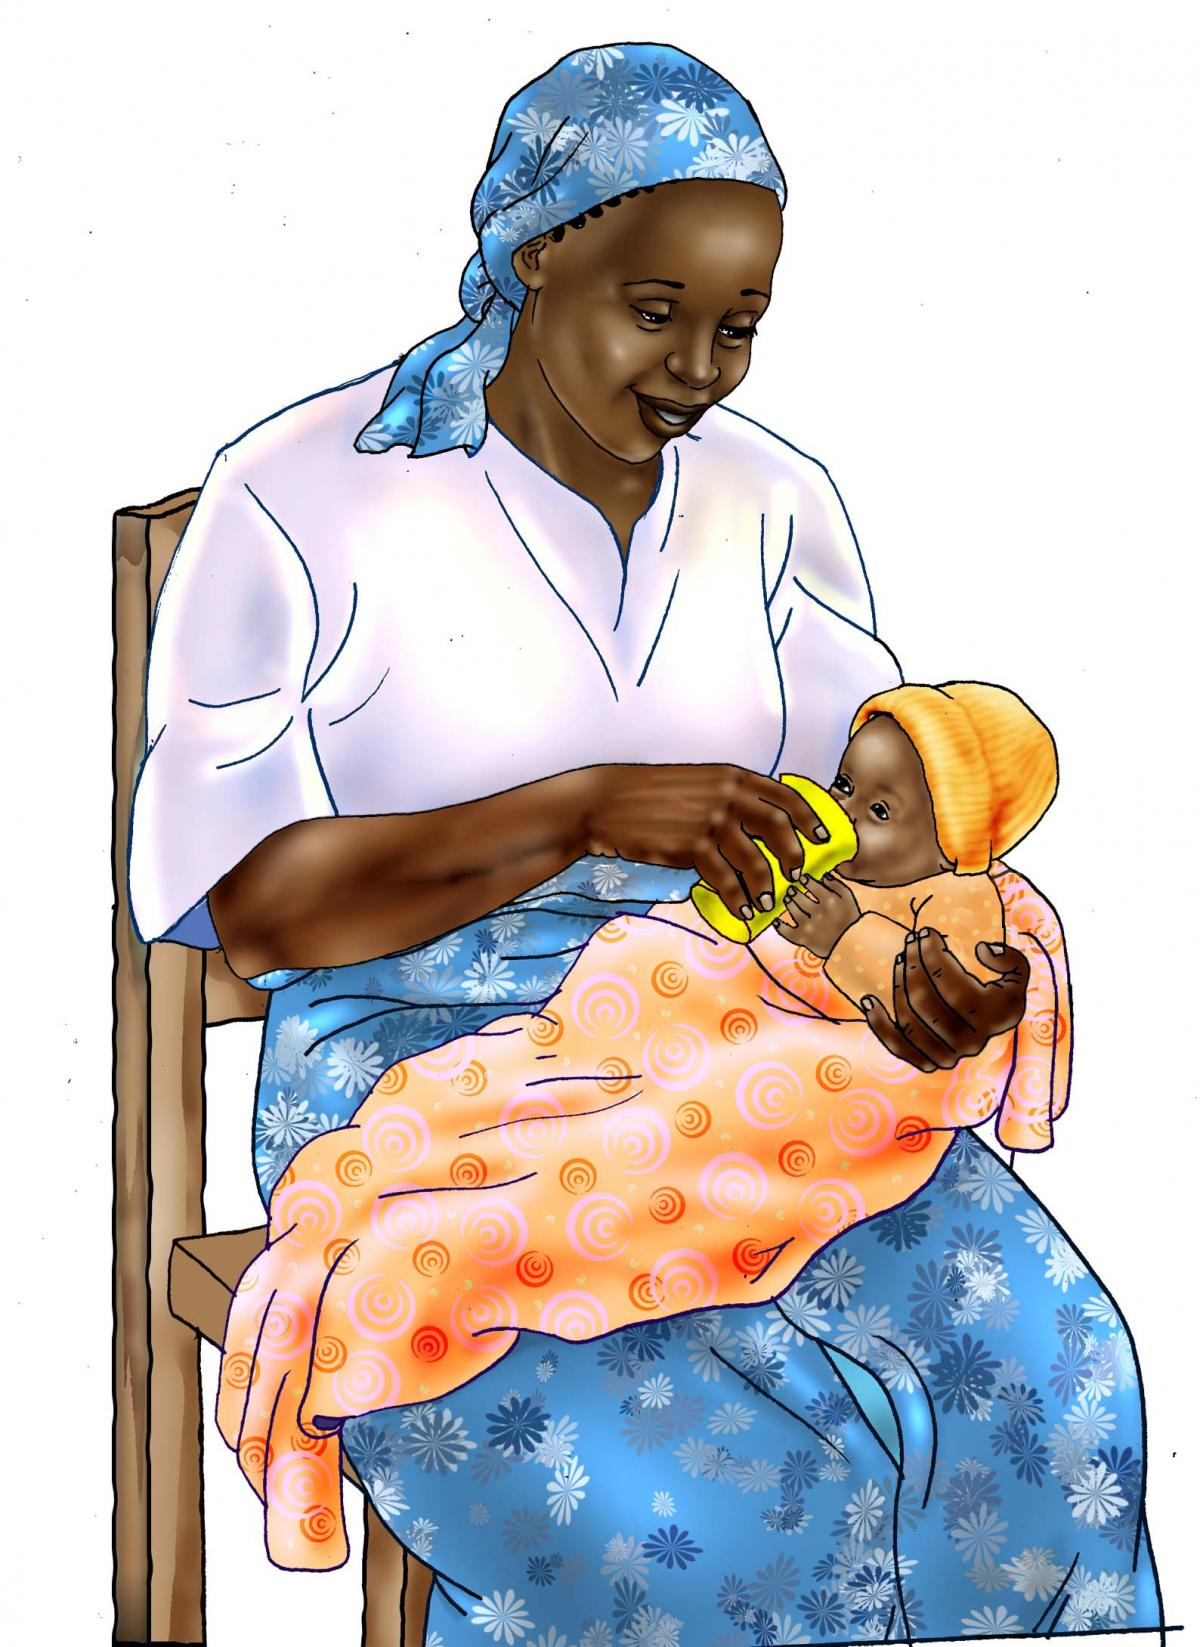 HIV - Cup feeding formula to an infant 0-24 mo - 05 - Tanzania